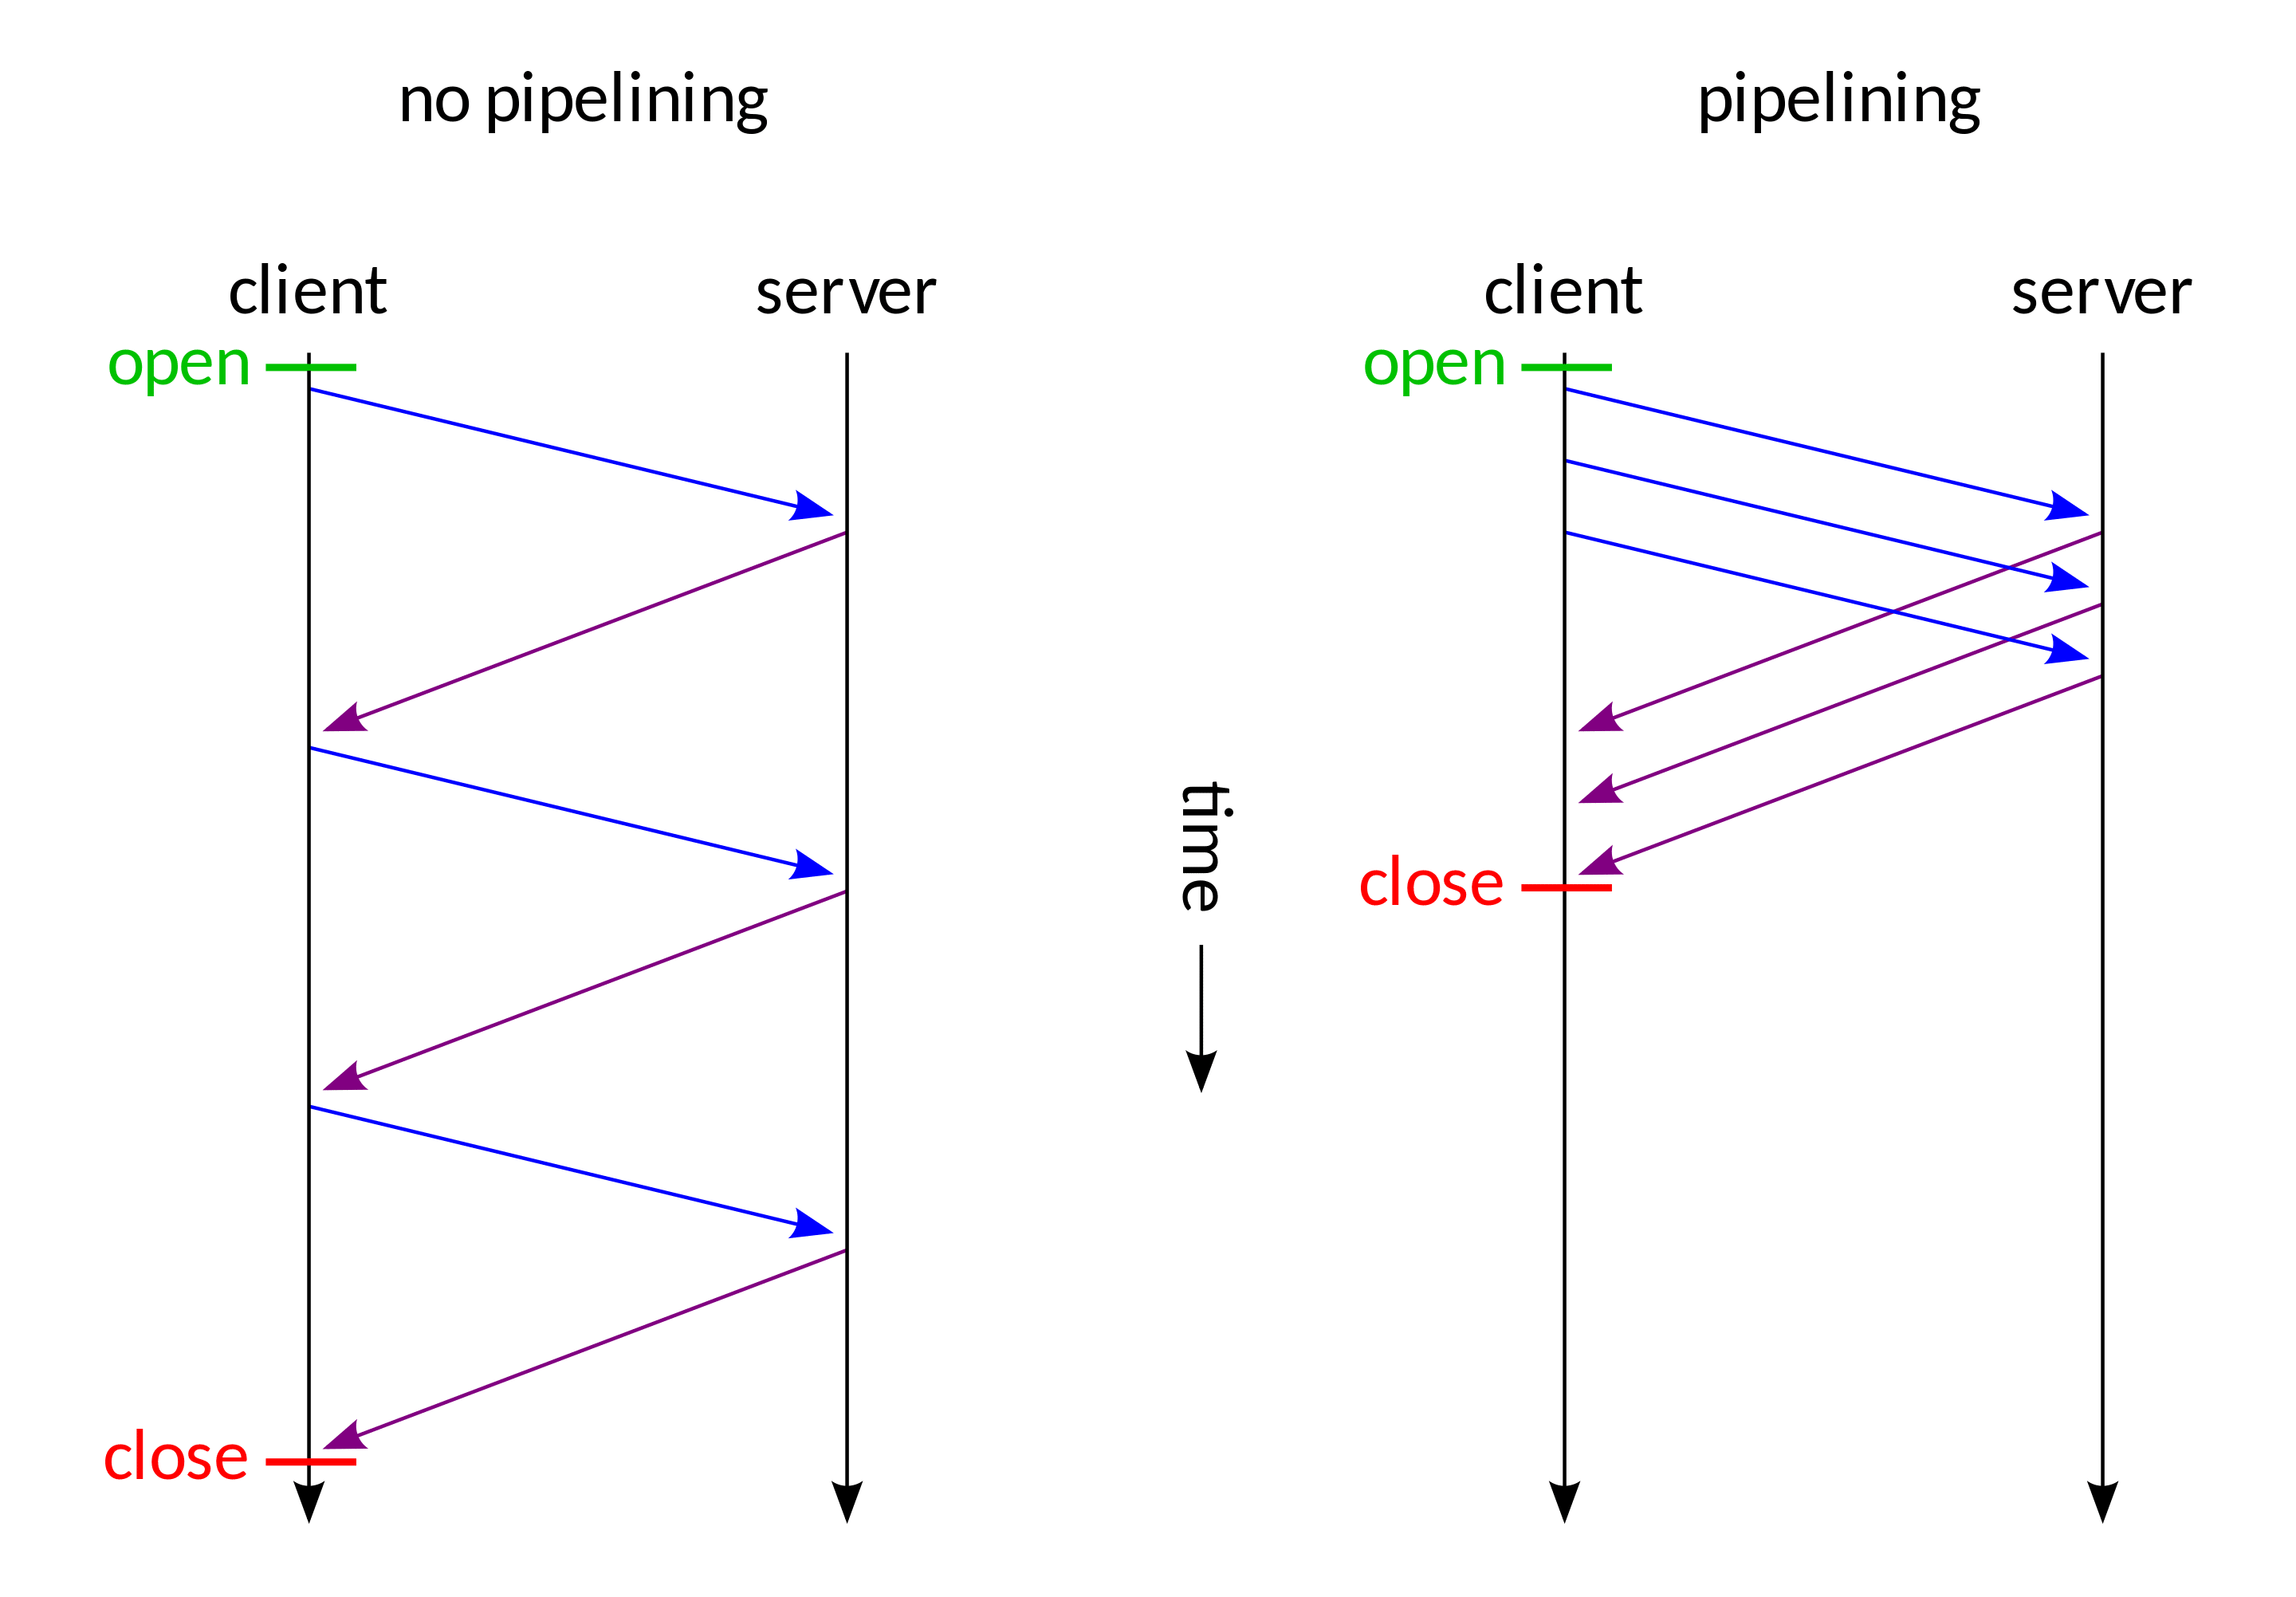 No pipelining vs pipelining